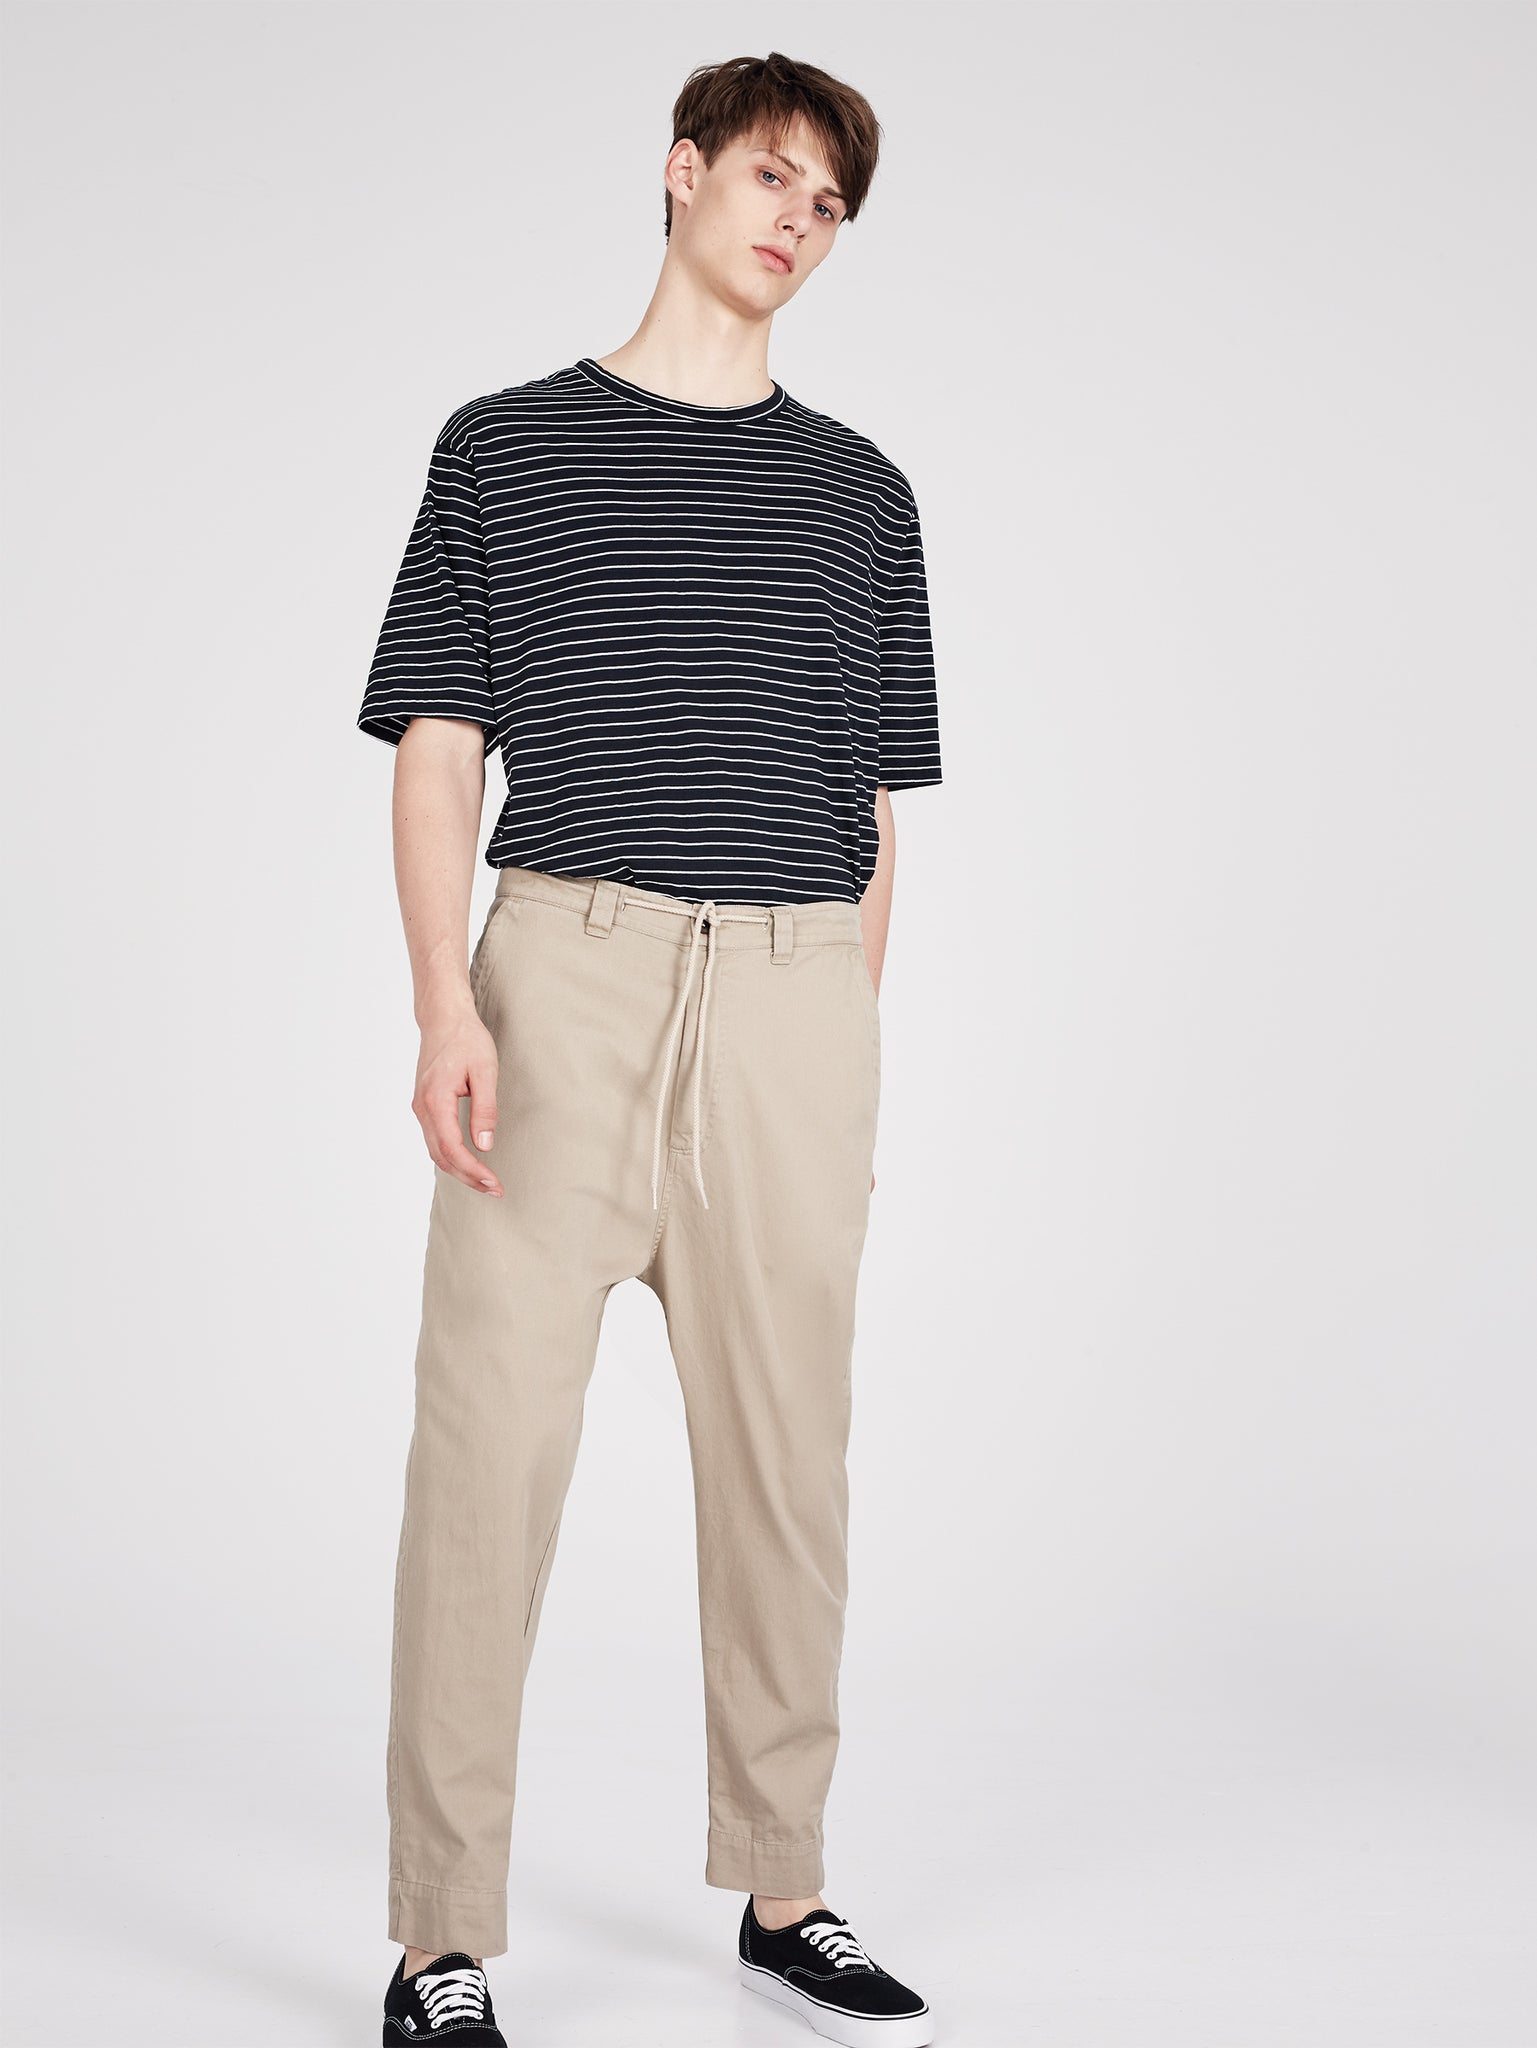 men spring summer 2019 look 19